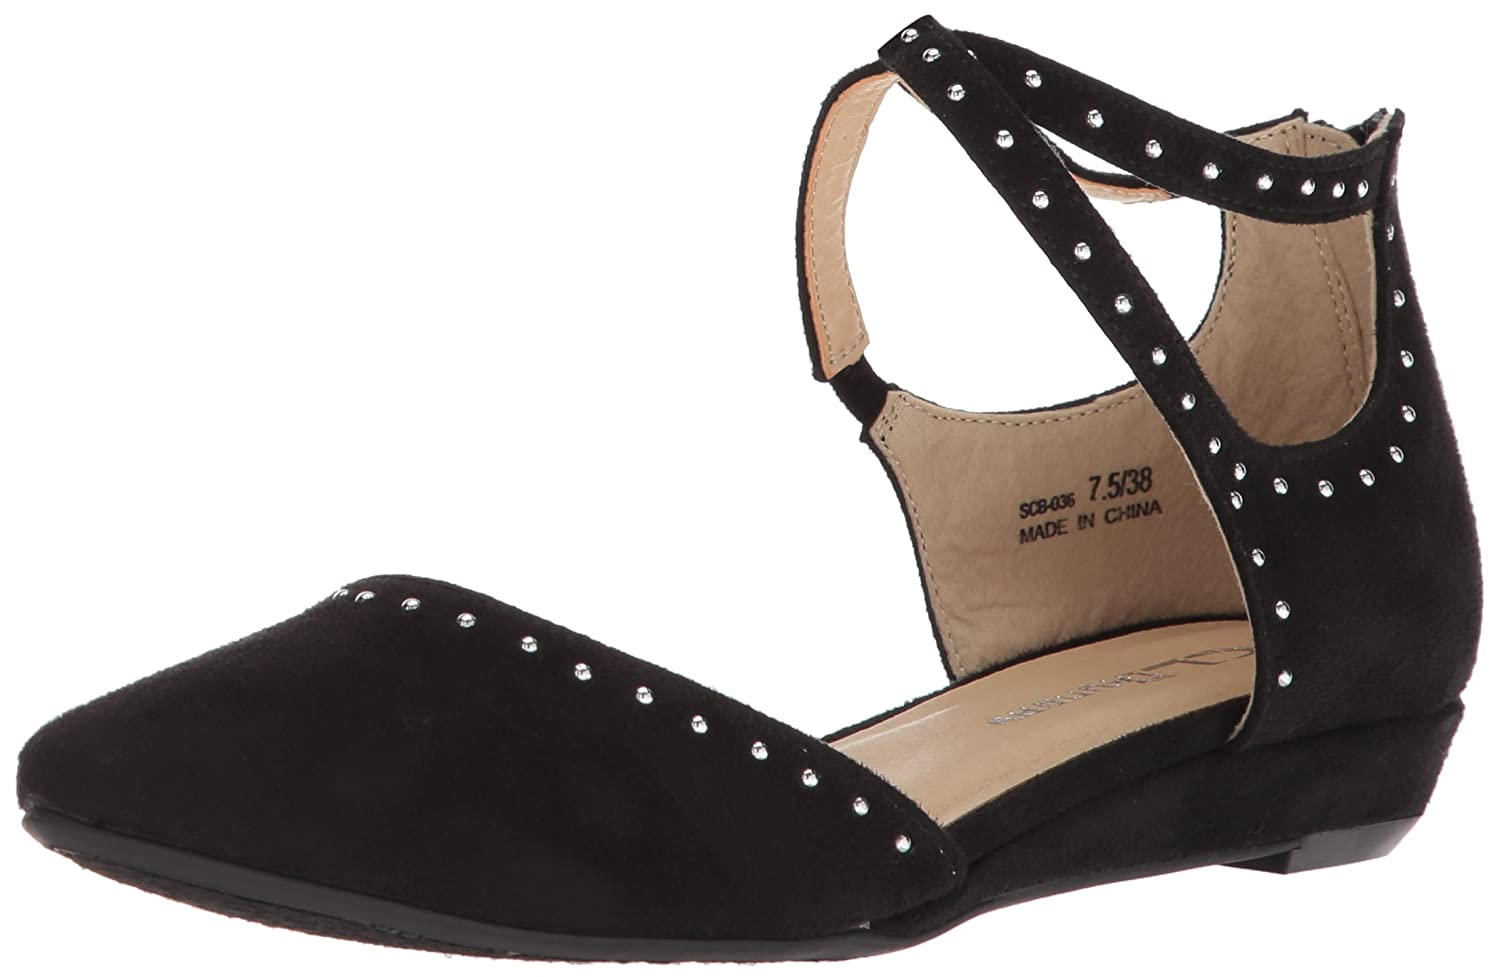 CL by Chinese Laundry Women's Smile Ballet Flat B076DHTWH8 7.5 B(M) US|Black Suede